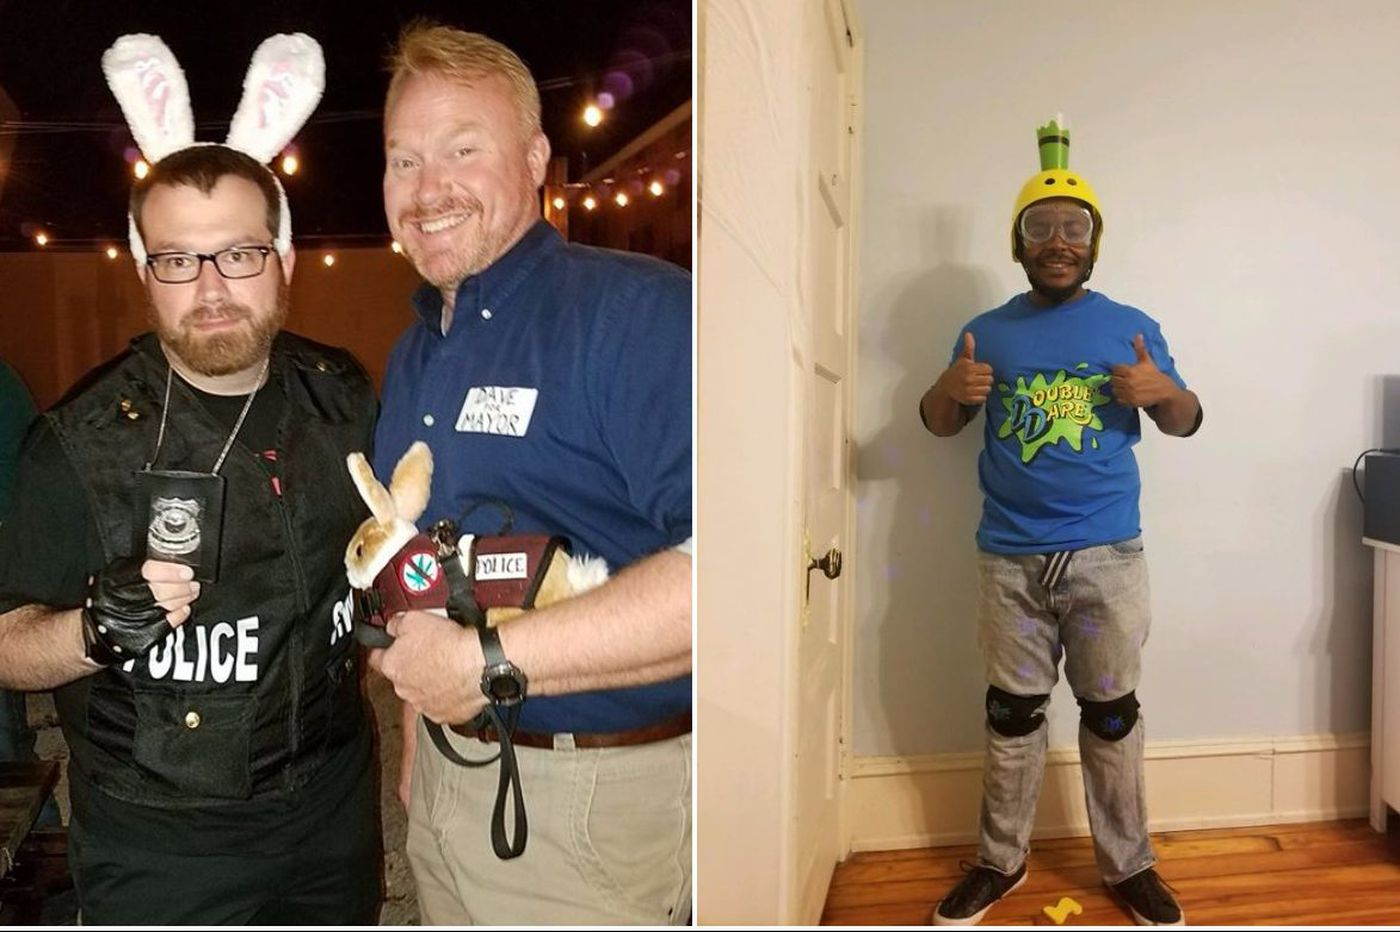 Drug-sniffing bunnies, beat-up Dallas fans and other Philly-inspired costumes